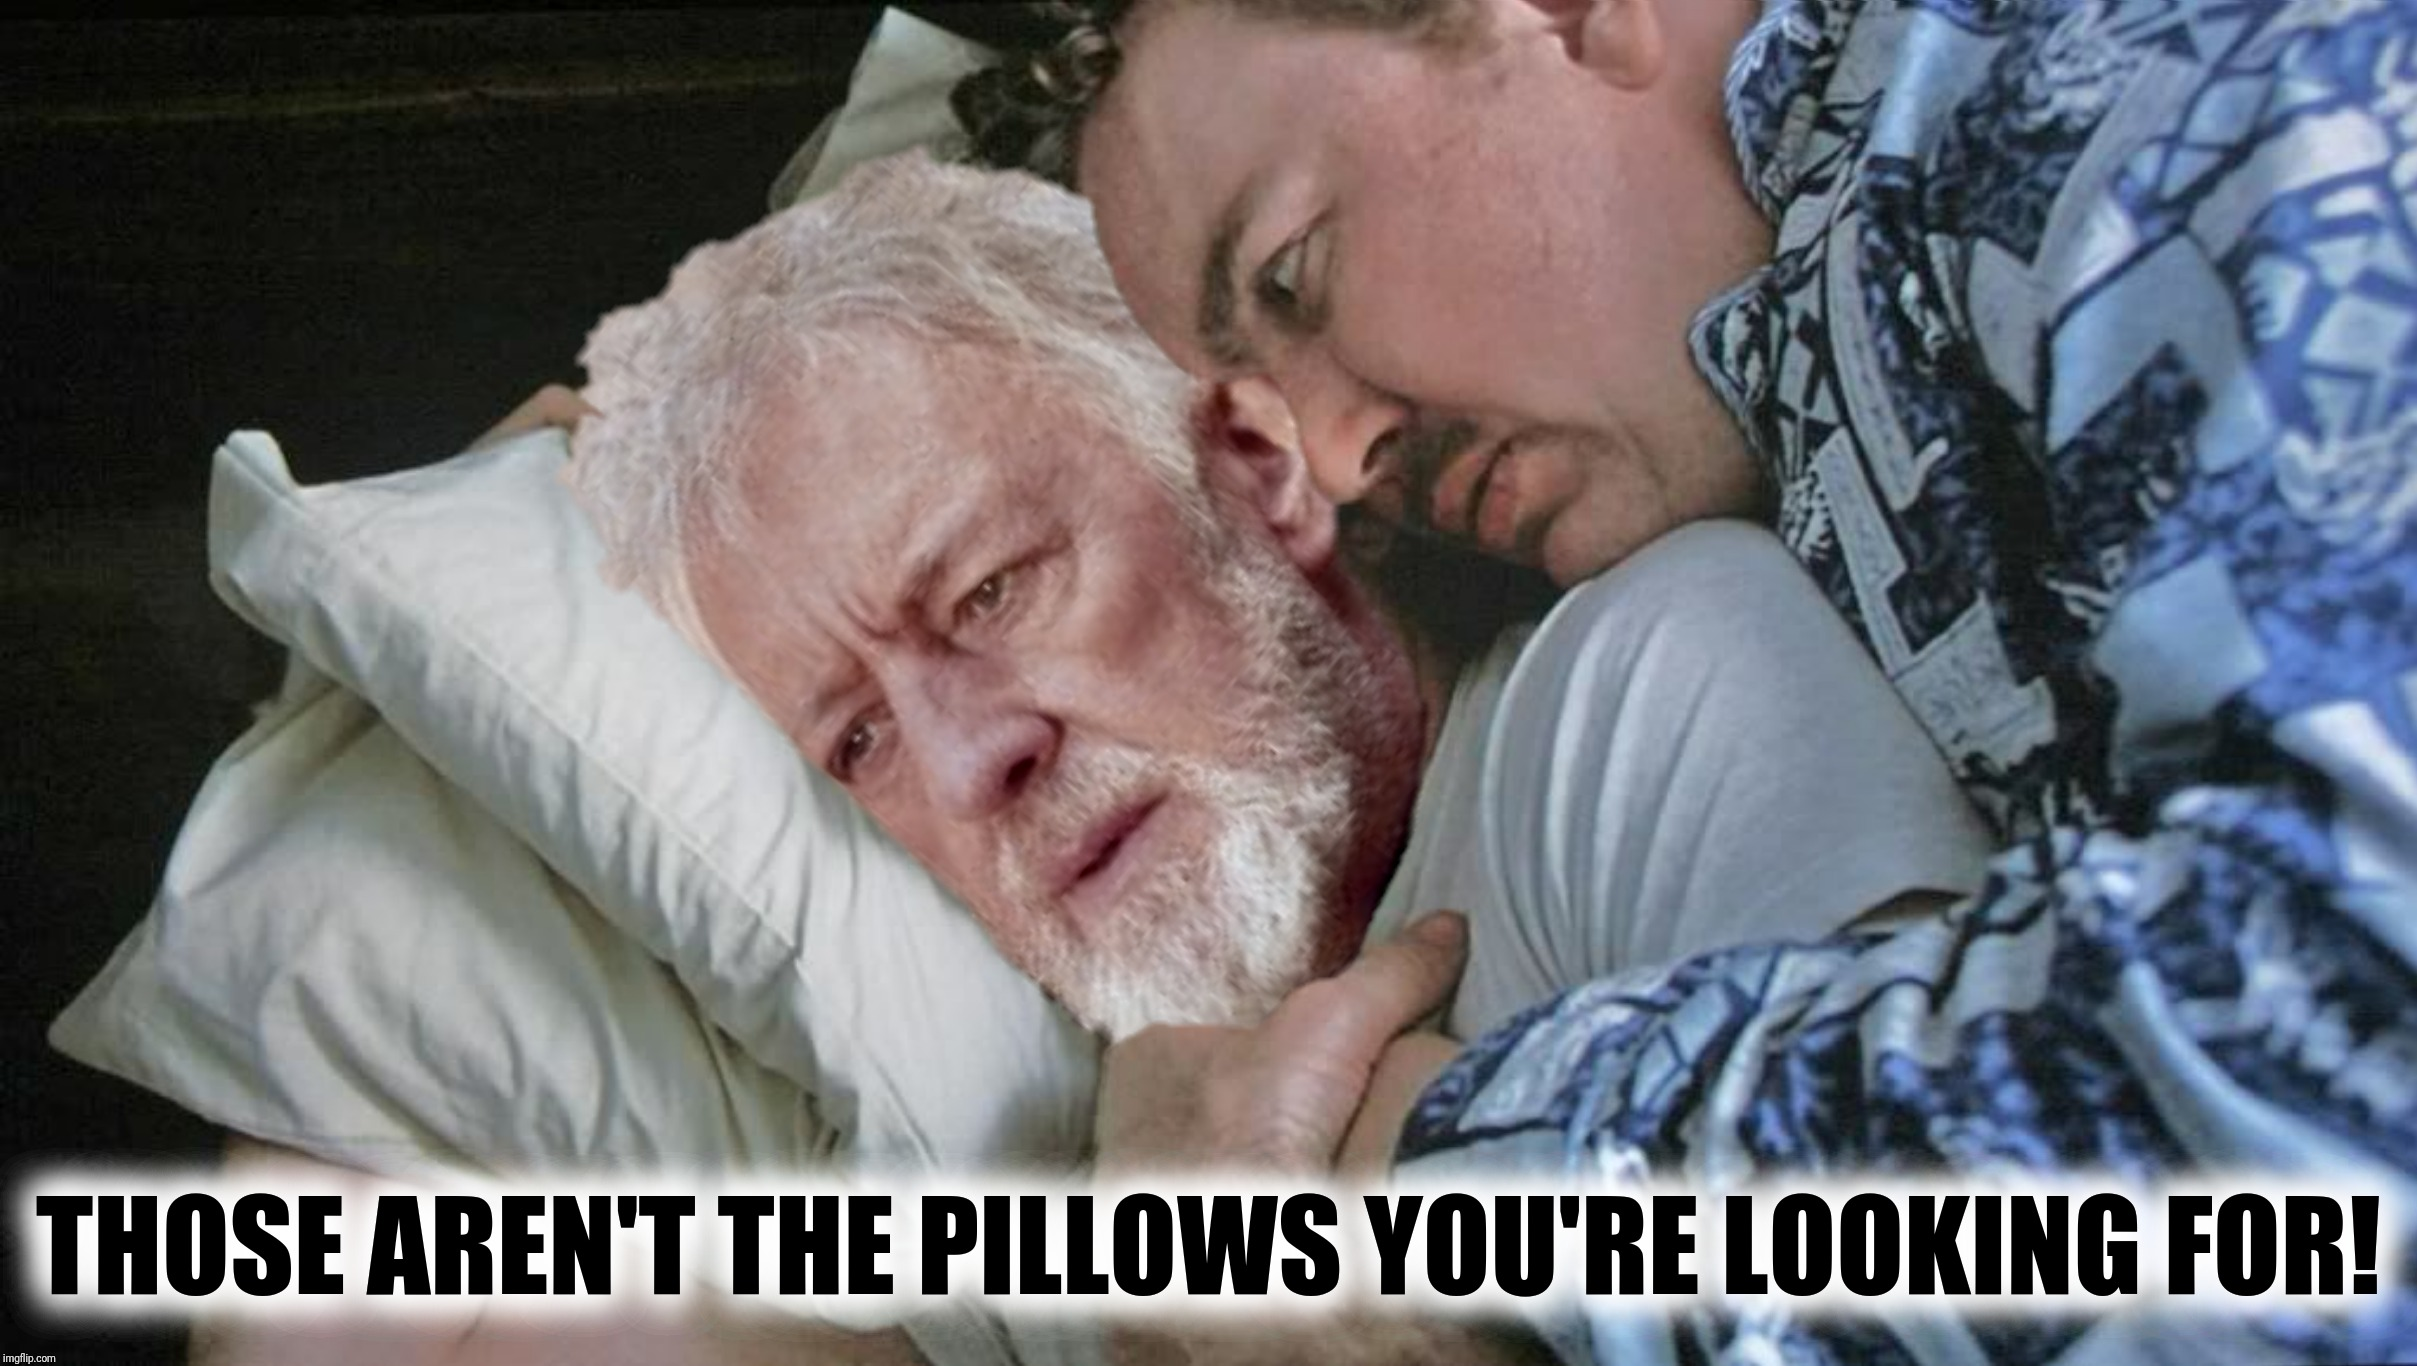 Bad Photoshop Sunday presents:  A long time ago in a hotel room far, far away | THOSE AREN'T THE PILLOWS YOU'RE LOOKING FOR! | image tagged in bad photoshop sunday,planes trains and automobiles,star wars,obi wan kenobi | made w/ Imgflip meme maker